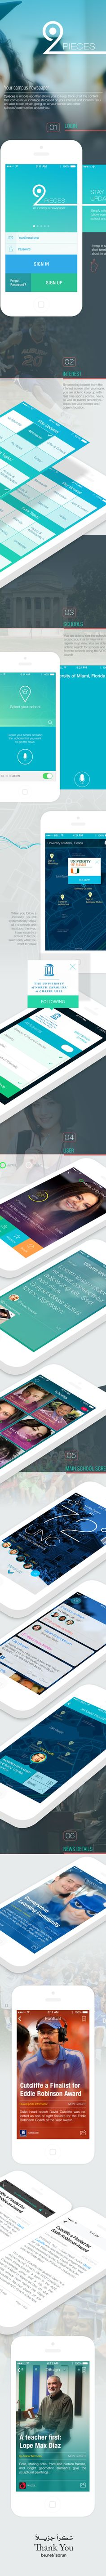 Social Student App IPHONE IOS7 by Yasser Achachi, via Behance